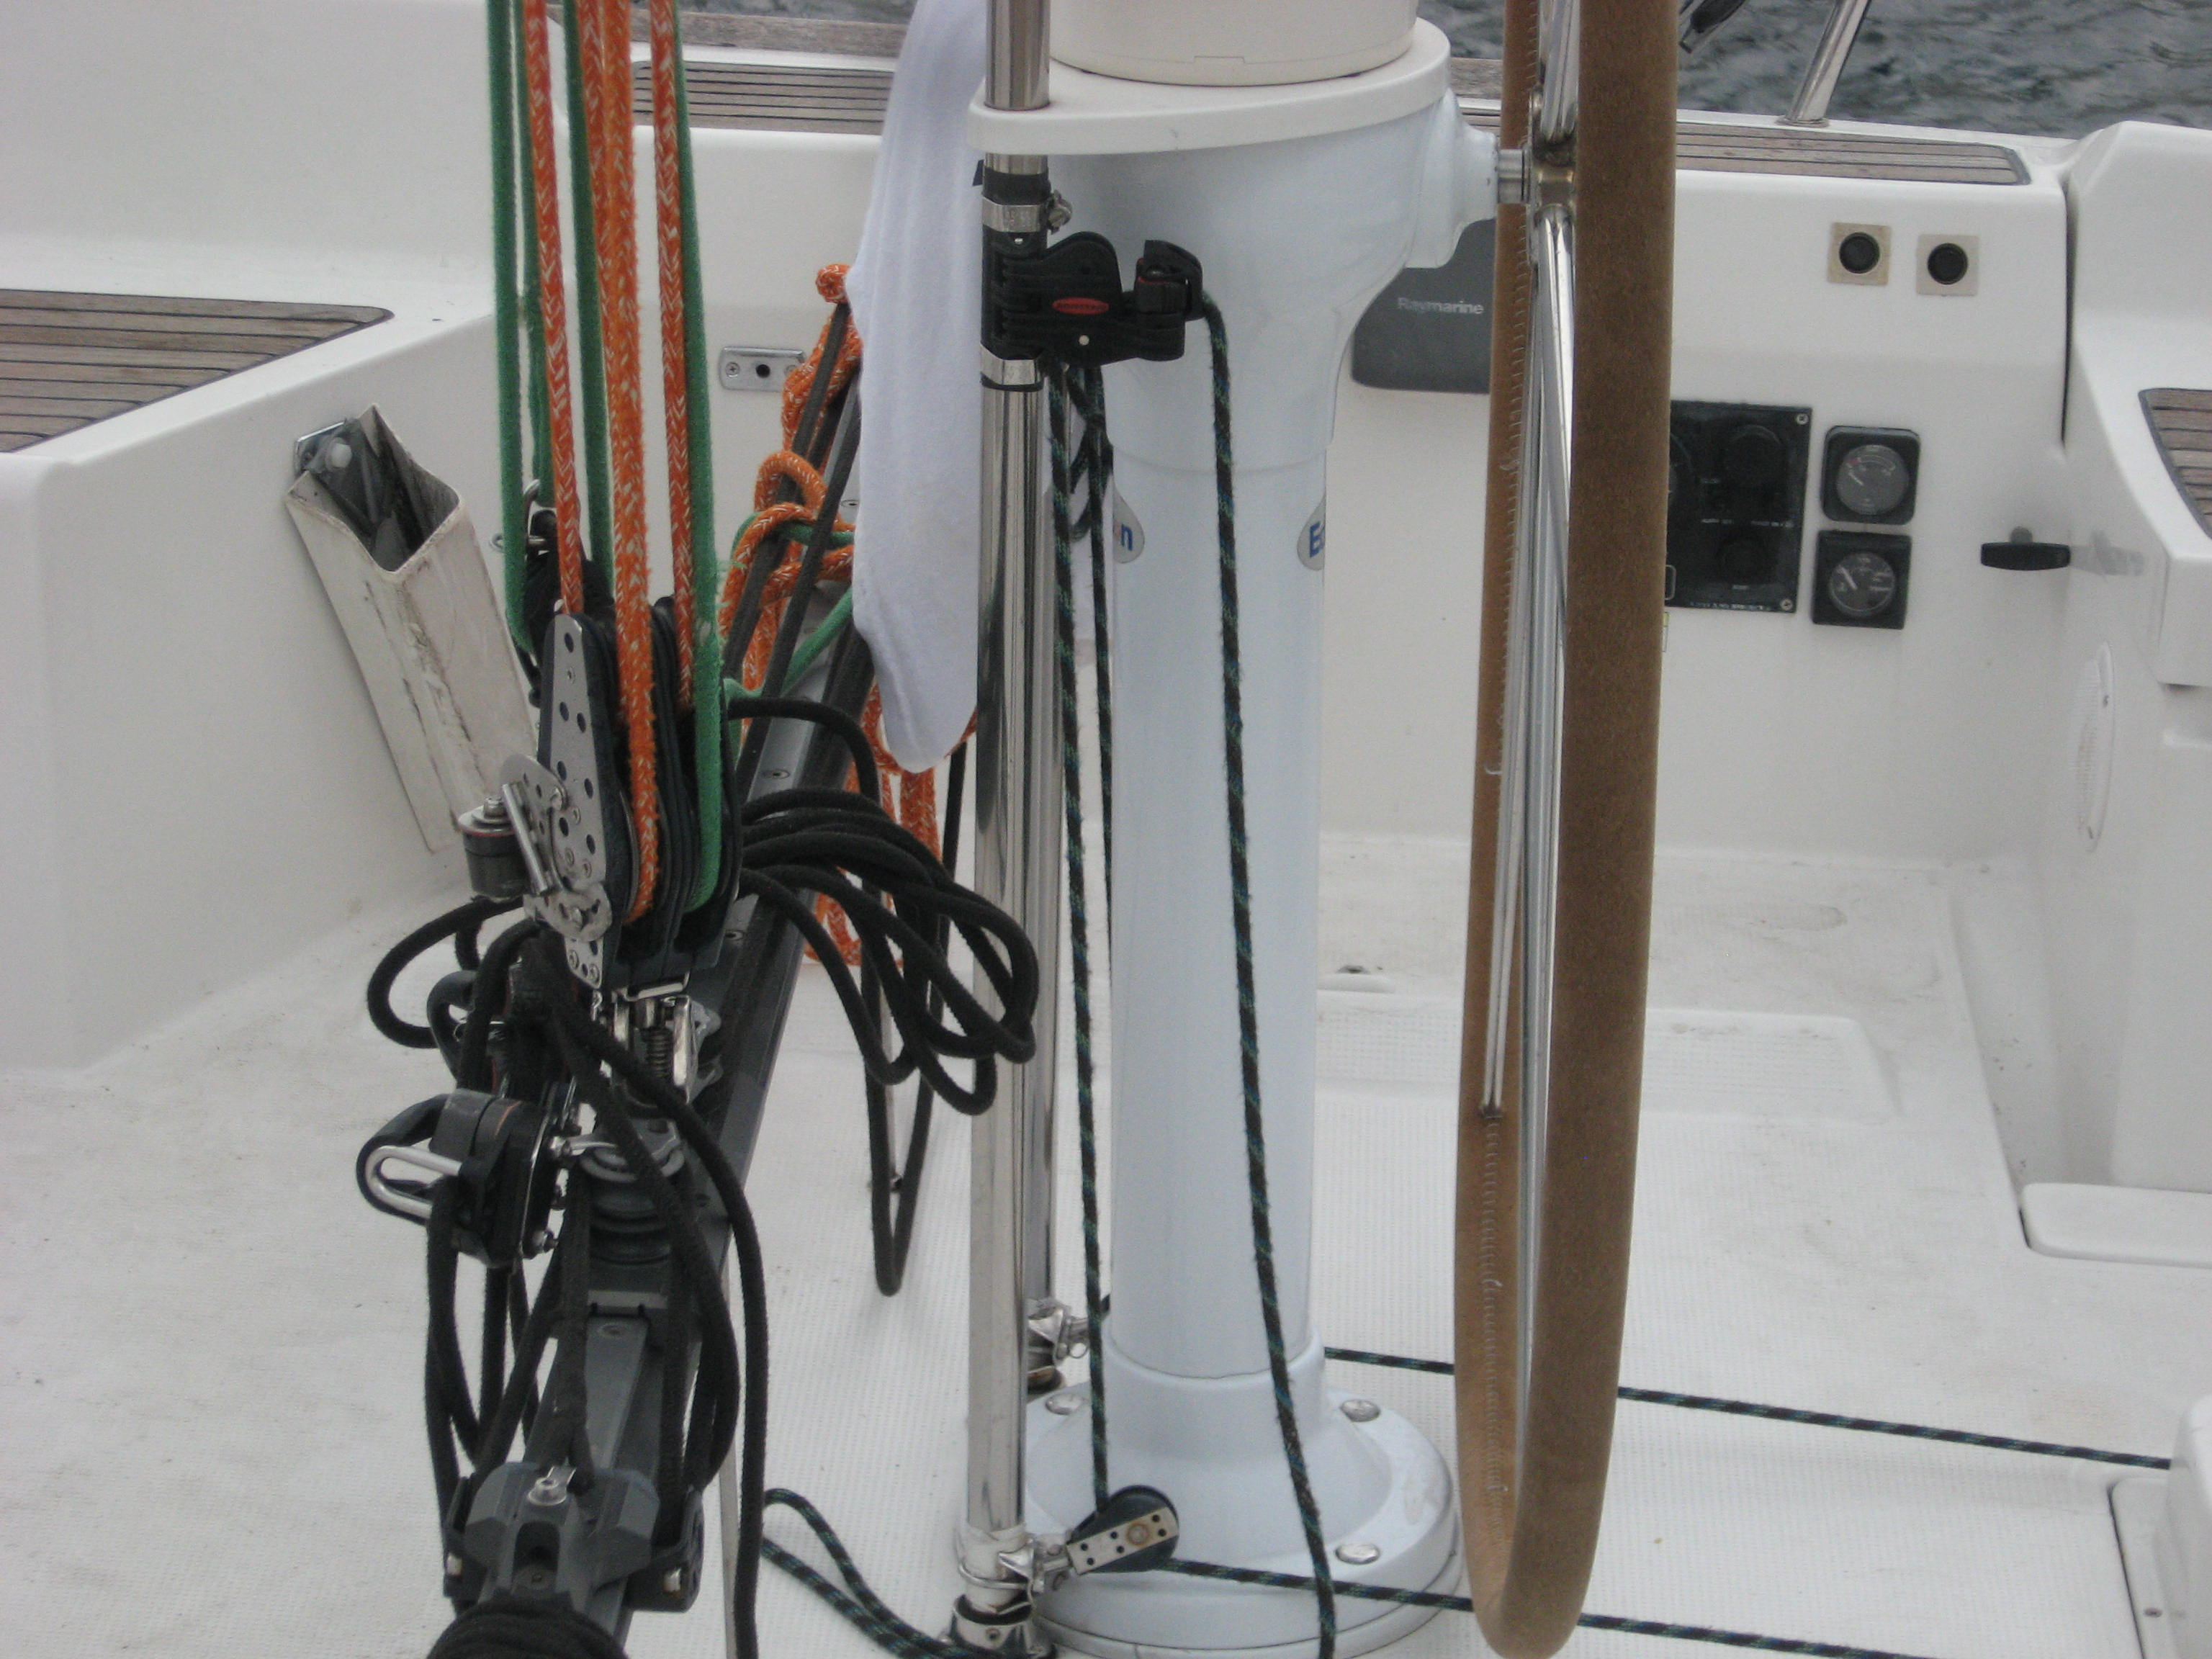 Beneteau backstay adjuetment rigging.